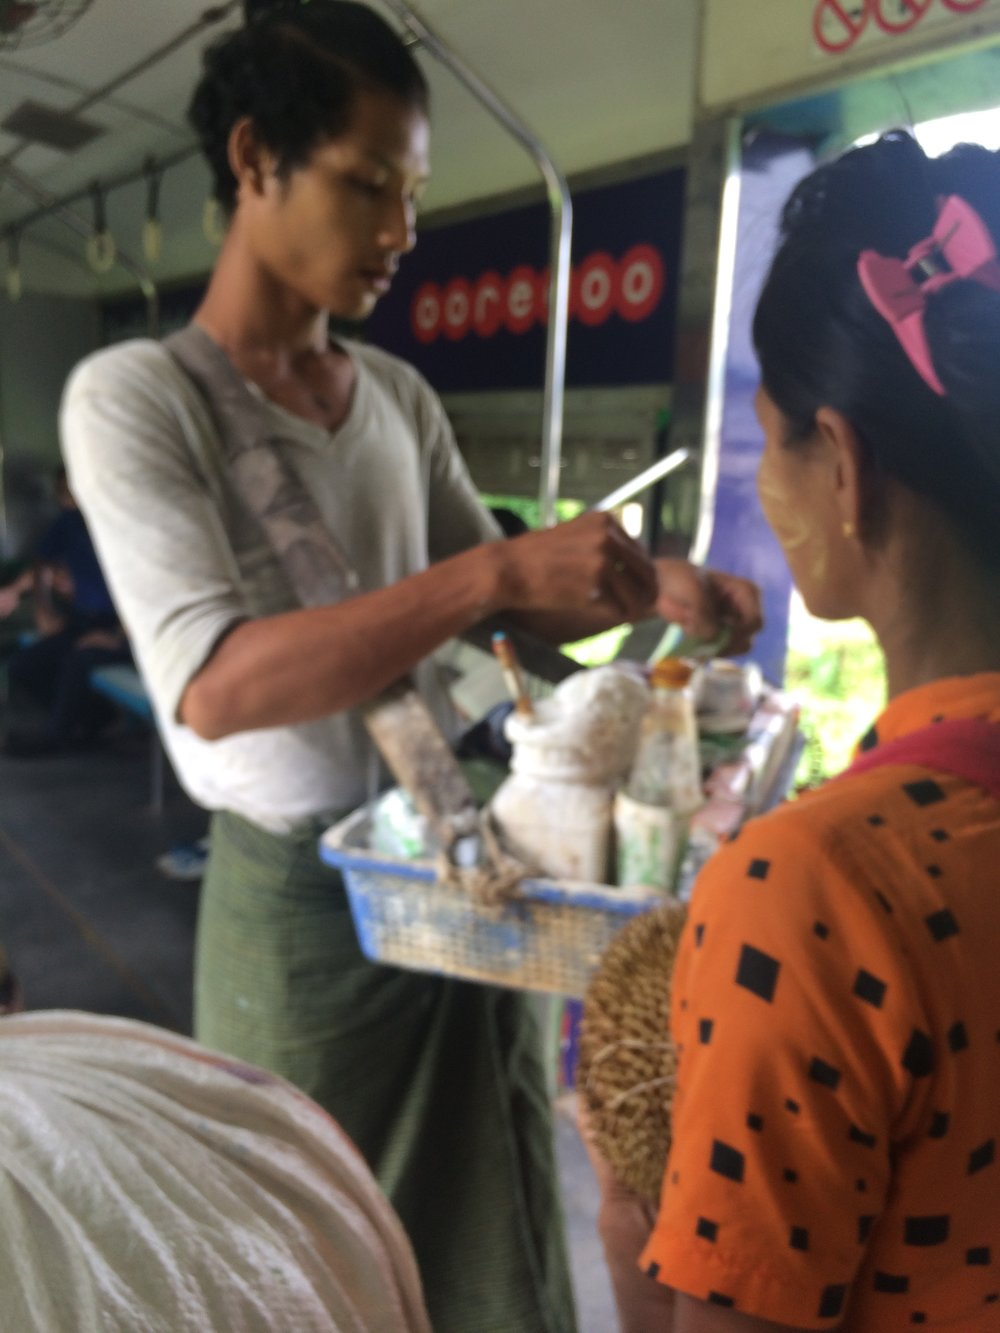 Selling Betel on the train